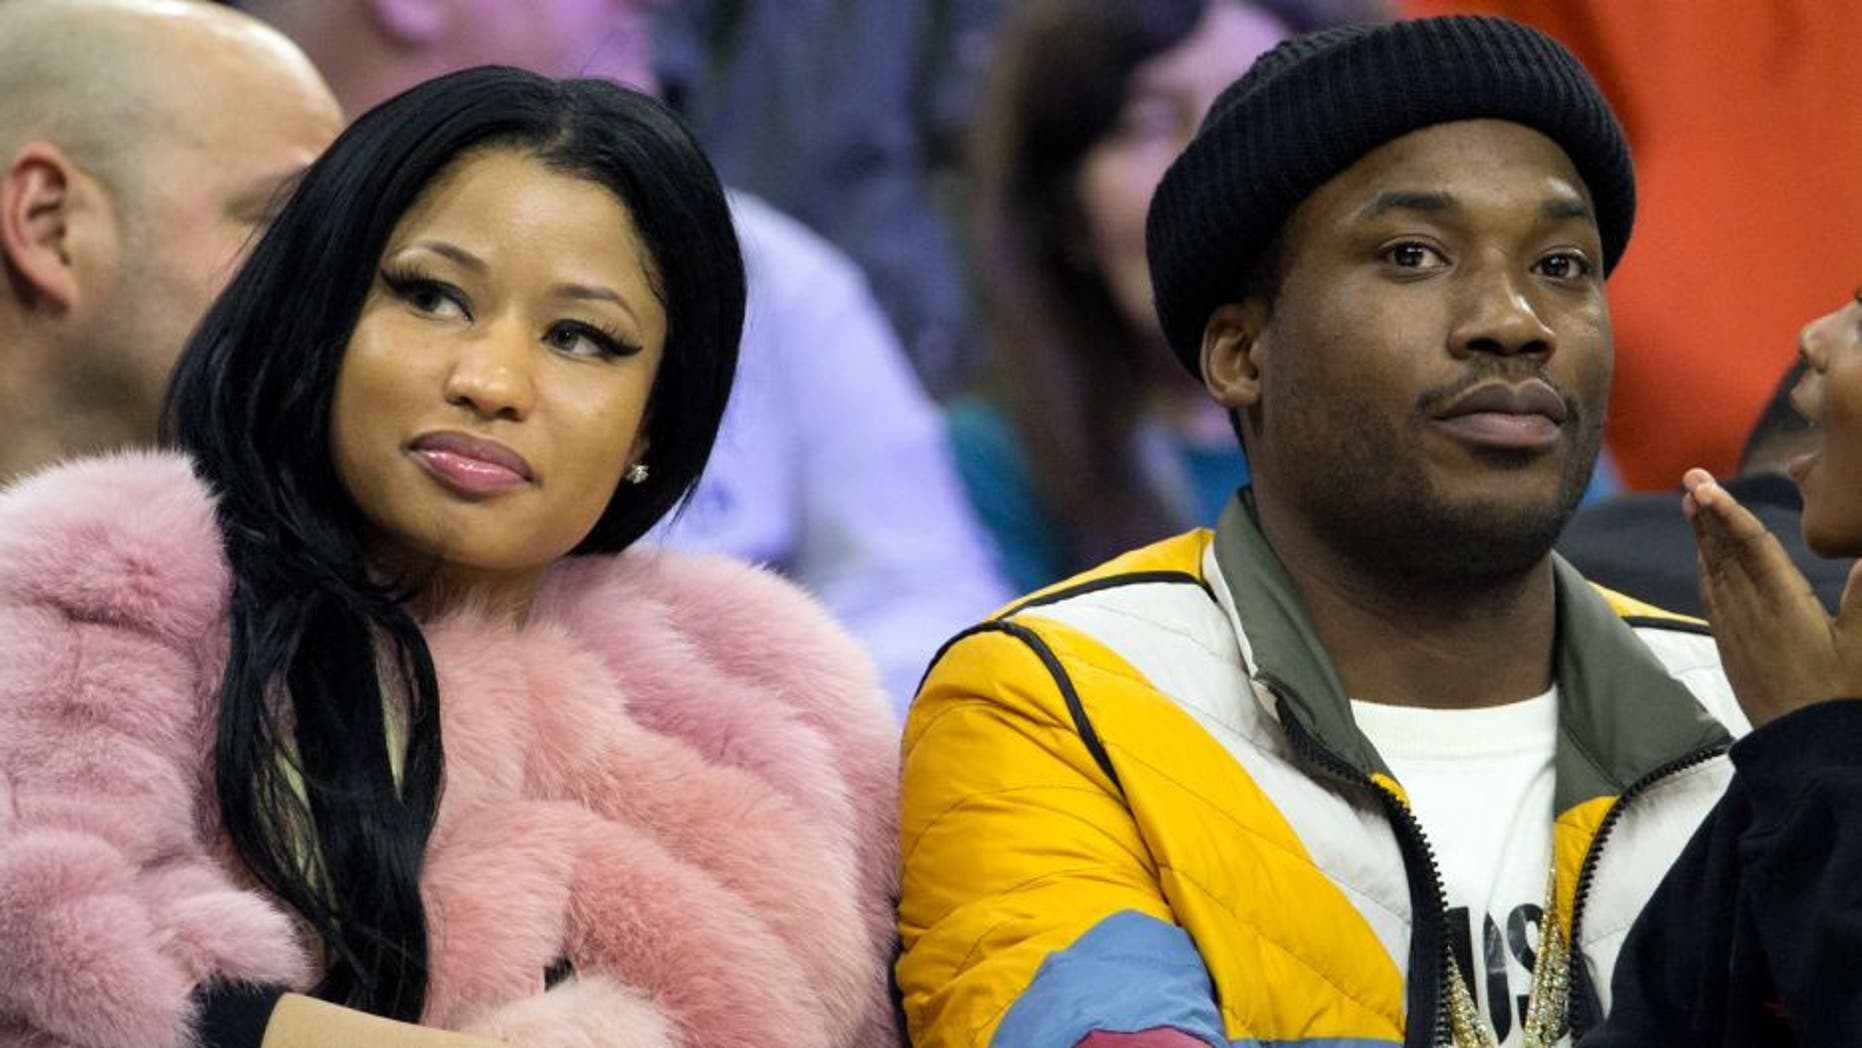 PHILADELPHIA, PA - JANUARY 26: Recording artists Nicki Minaj and Meek Mill look on during the game between the Phoenix Suns and Philadelphia 76ers on January 26, 2016 at the Wells Fargo Center in Philadelphia, Pennsylvania. (Mitchell Leff/Getty Images)